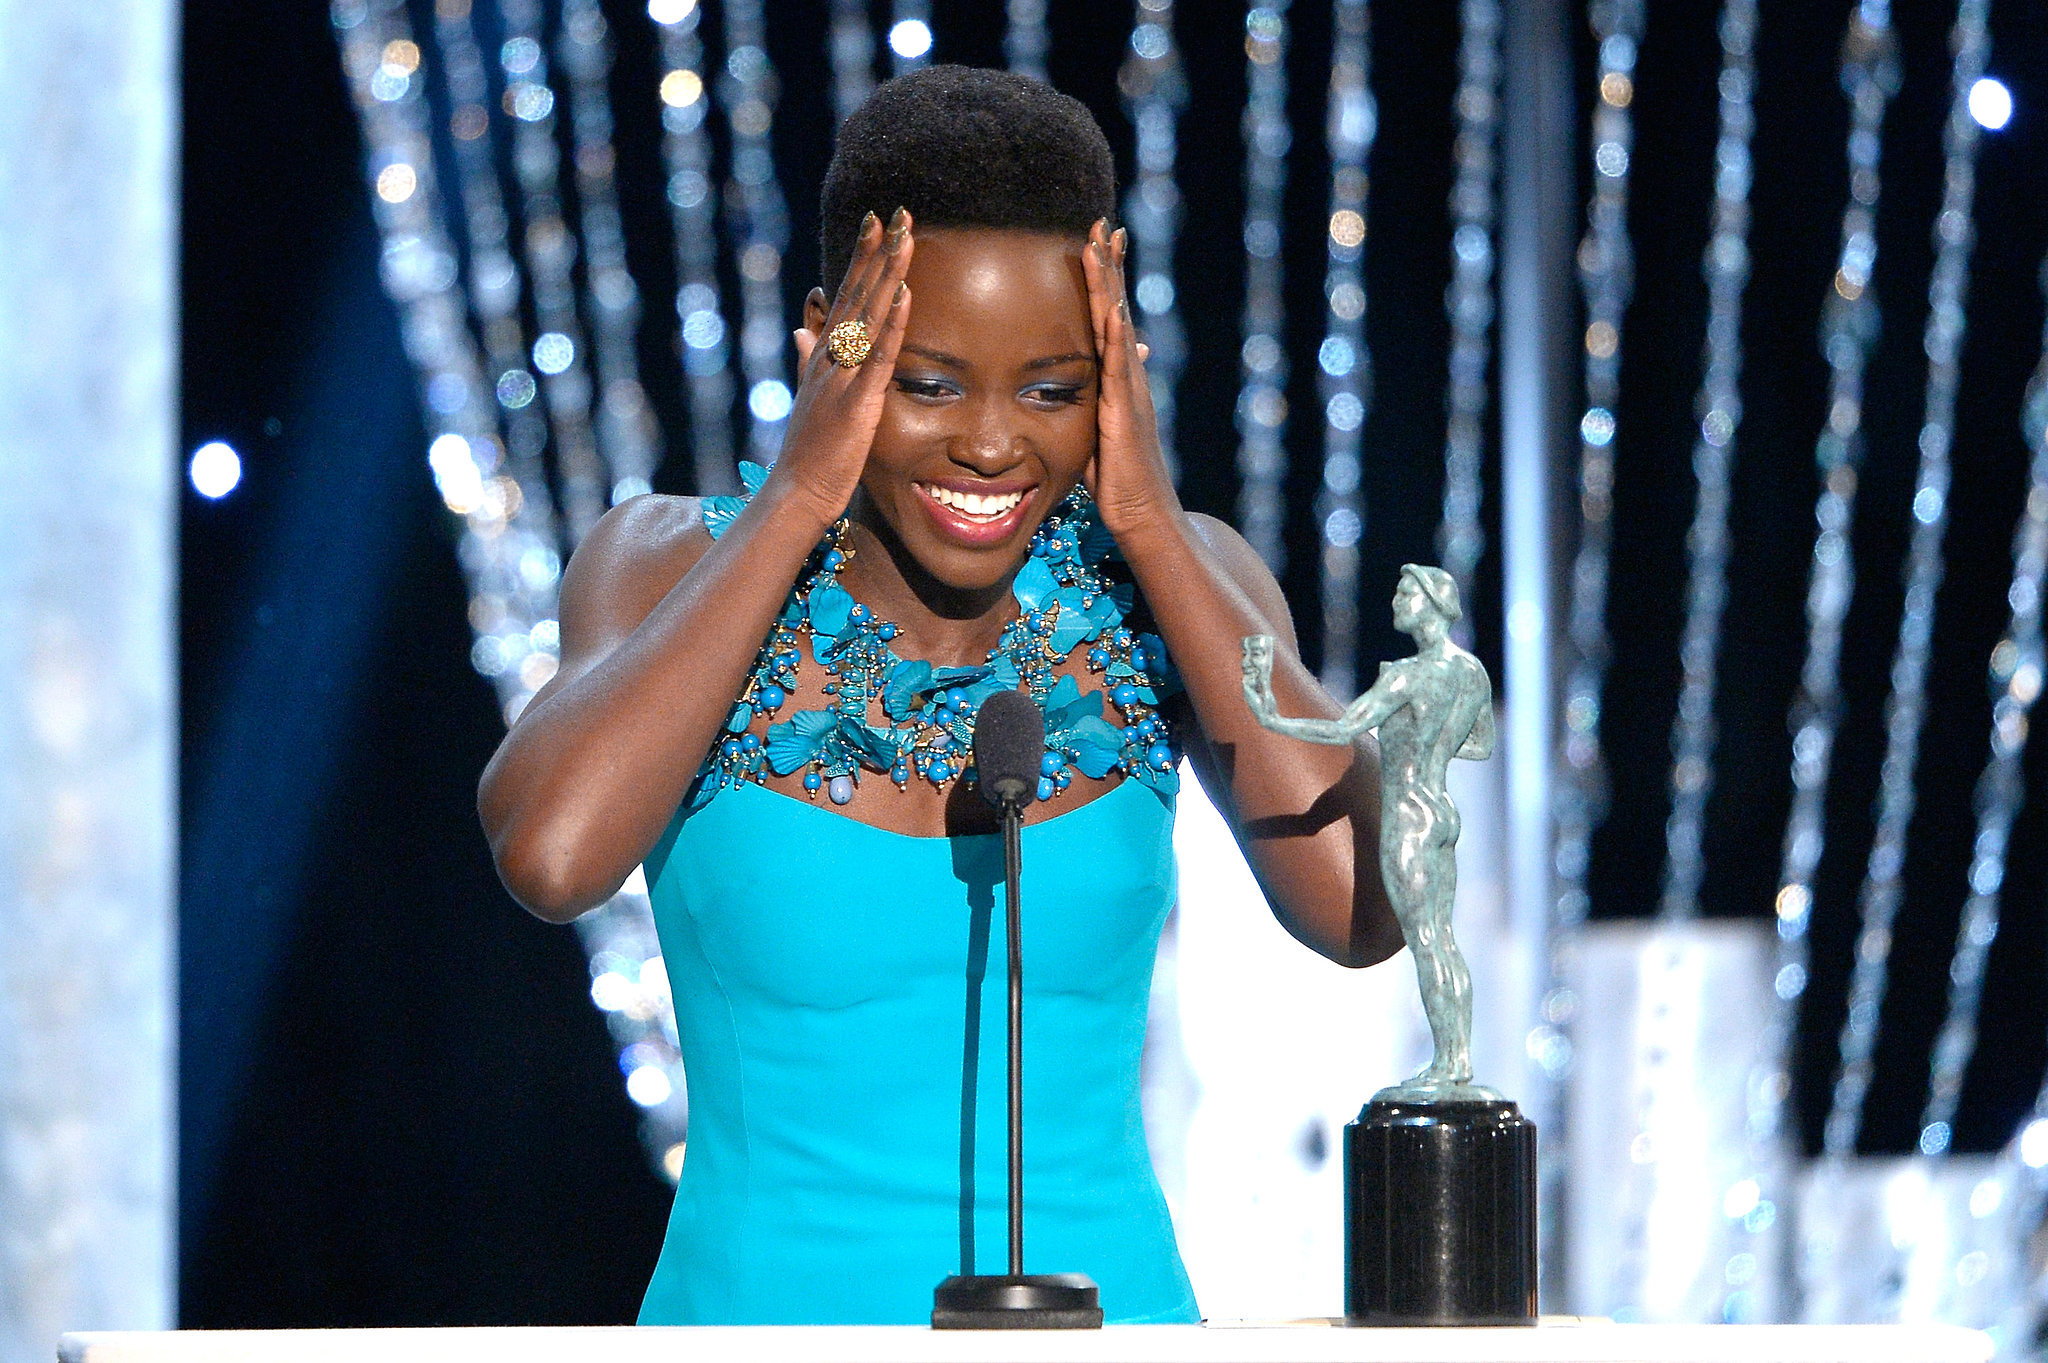 lupita nyongo years slave couldnt believe she won jpg you